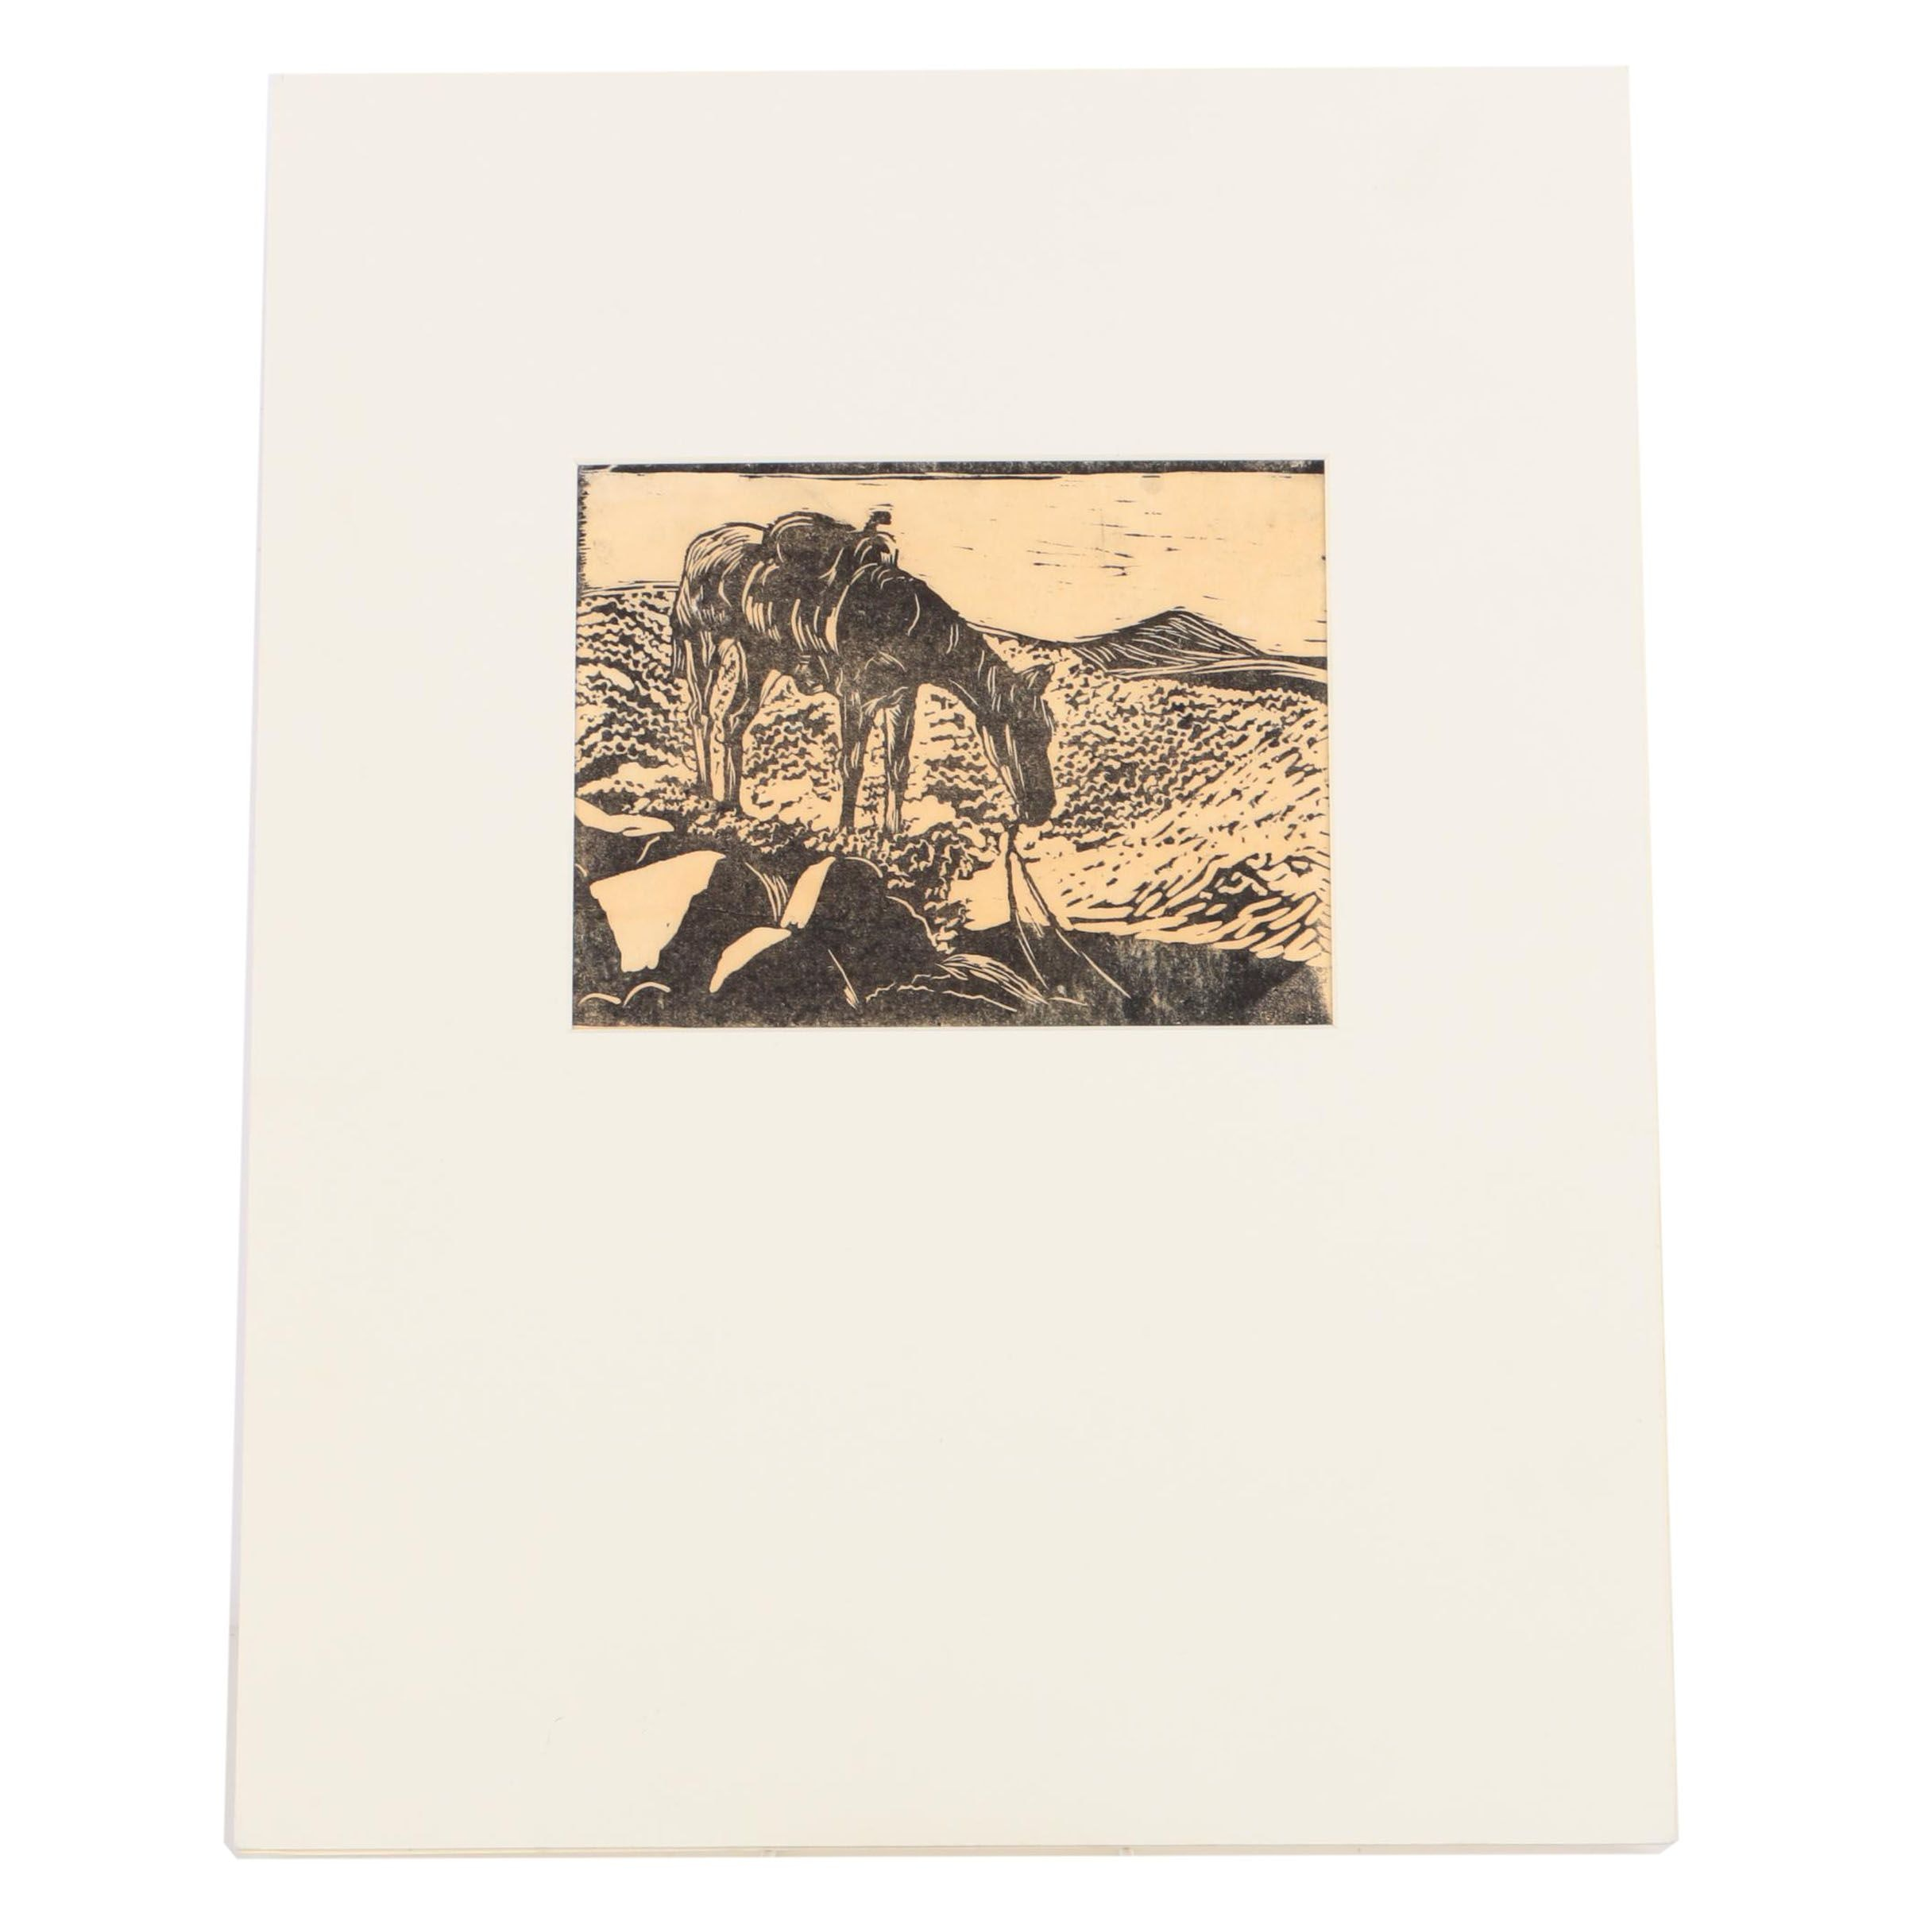 "Woodcut Print on Paper Attributed to Edna Martin ""On Top"""